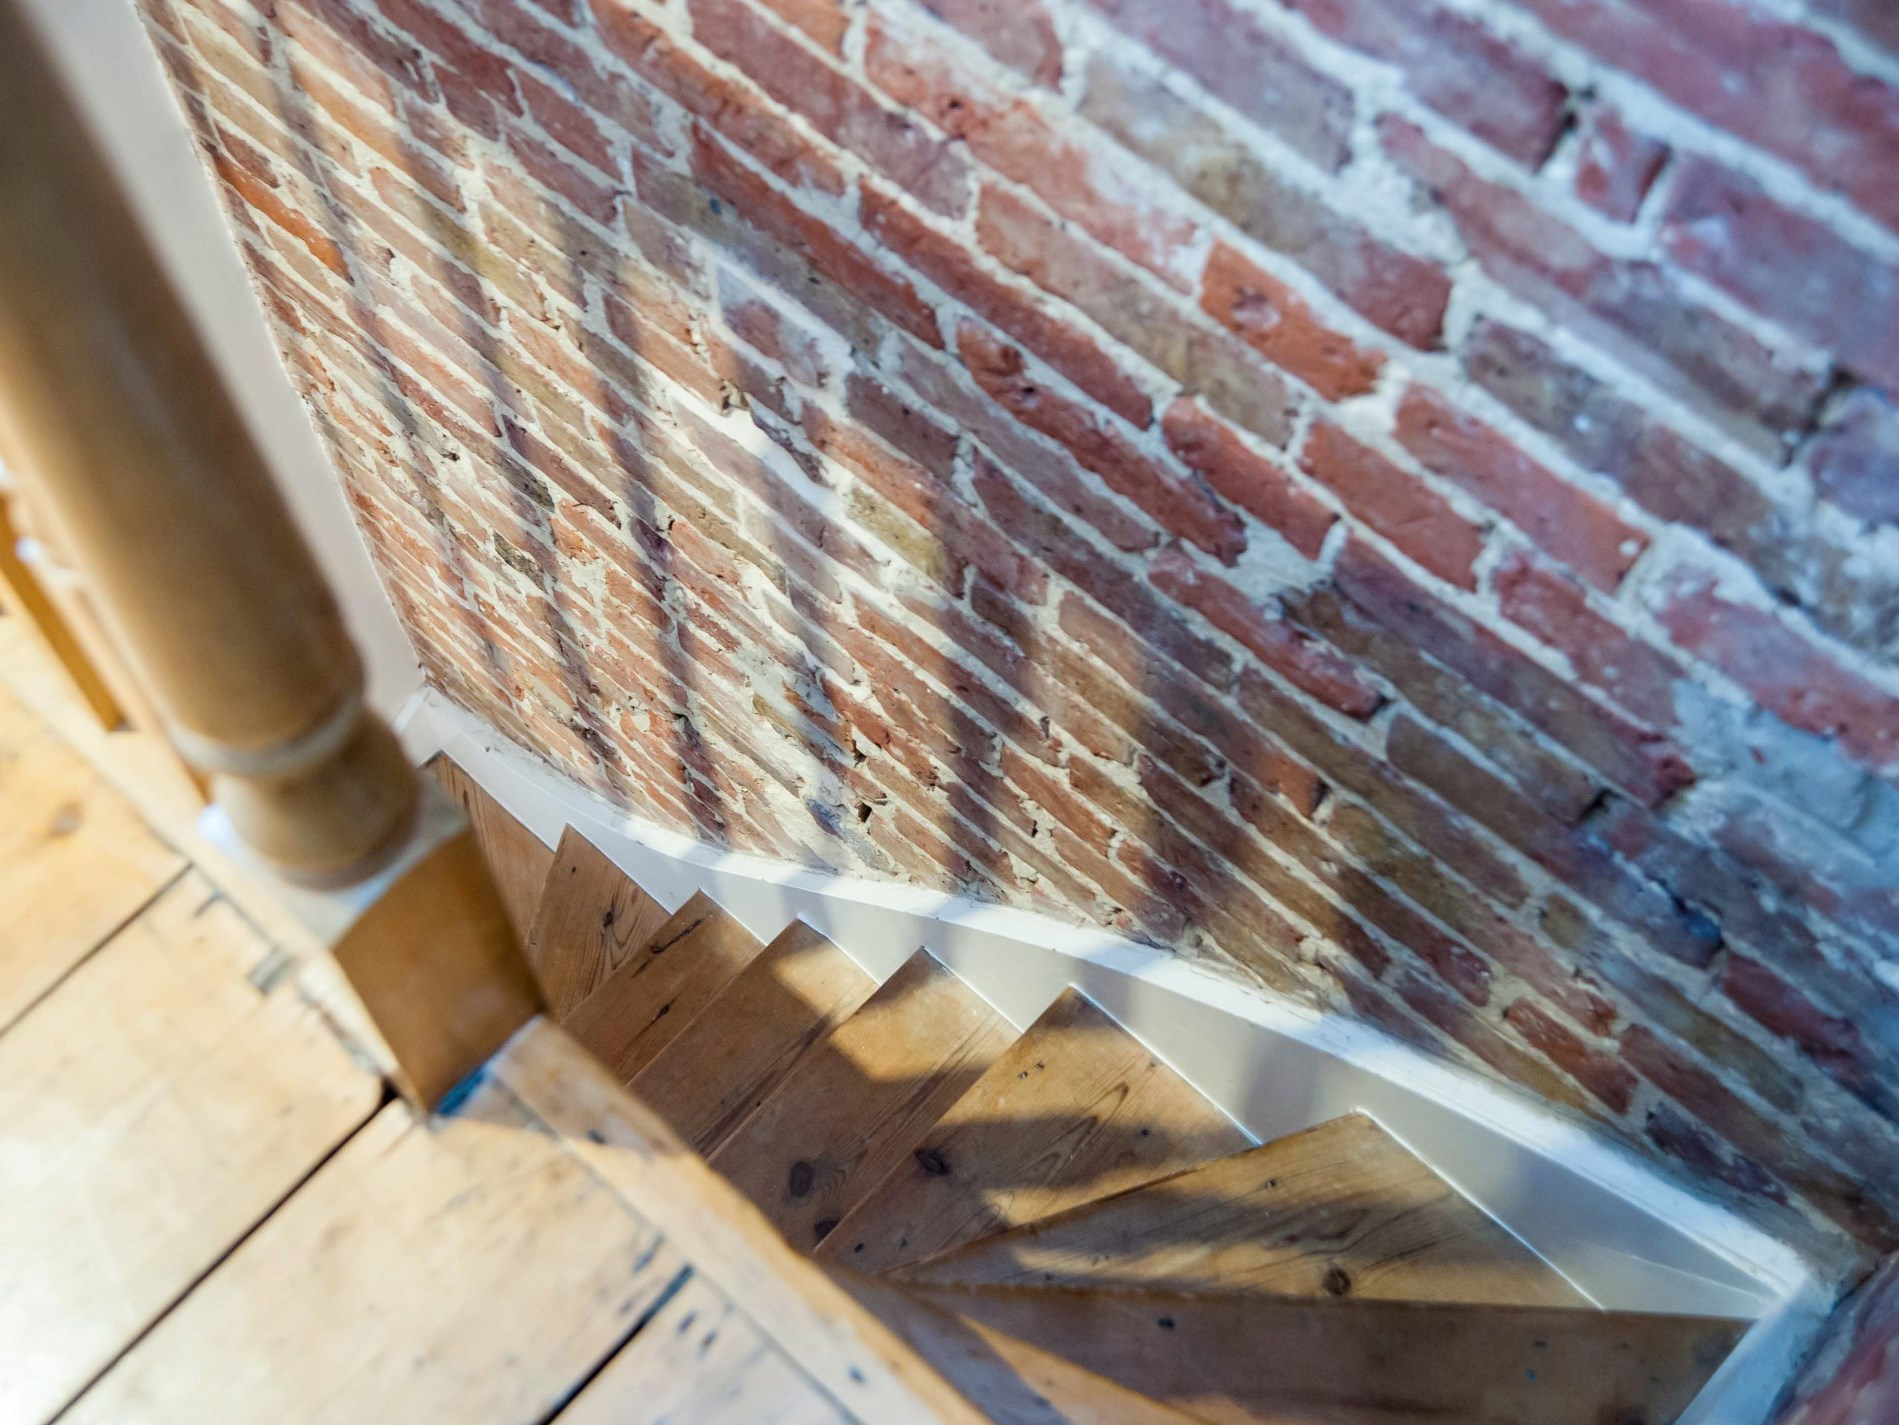 Narrow and steep stairs are customary in a property of this age